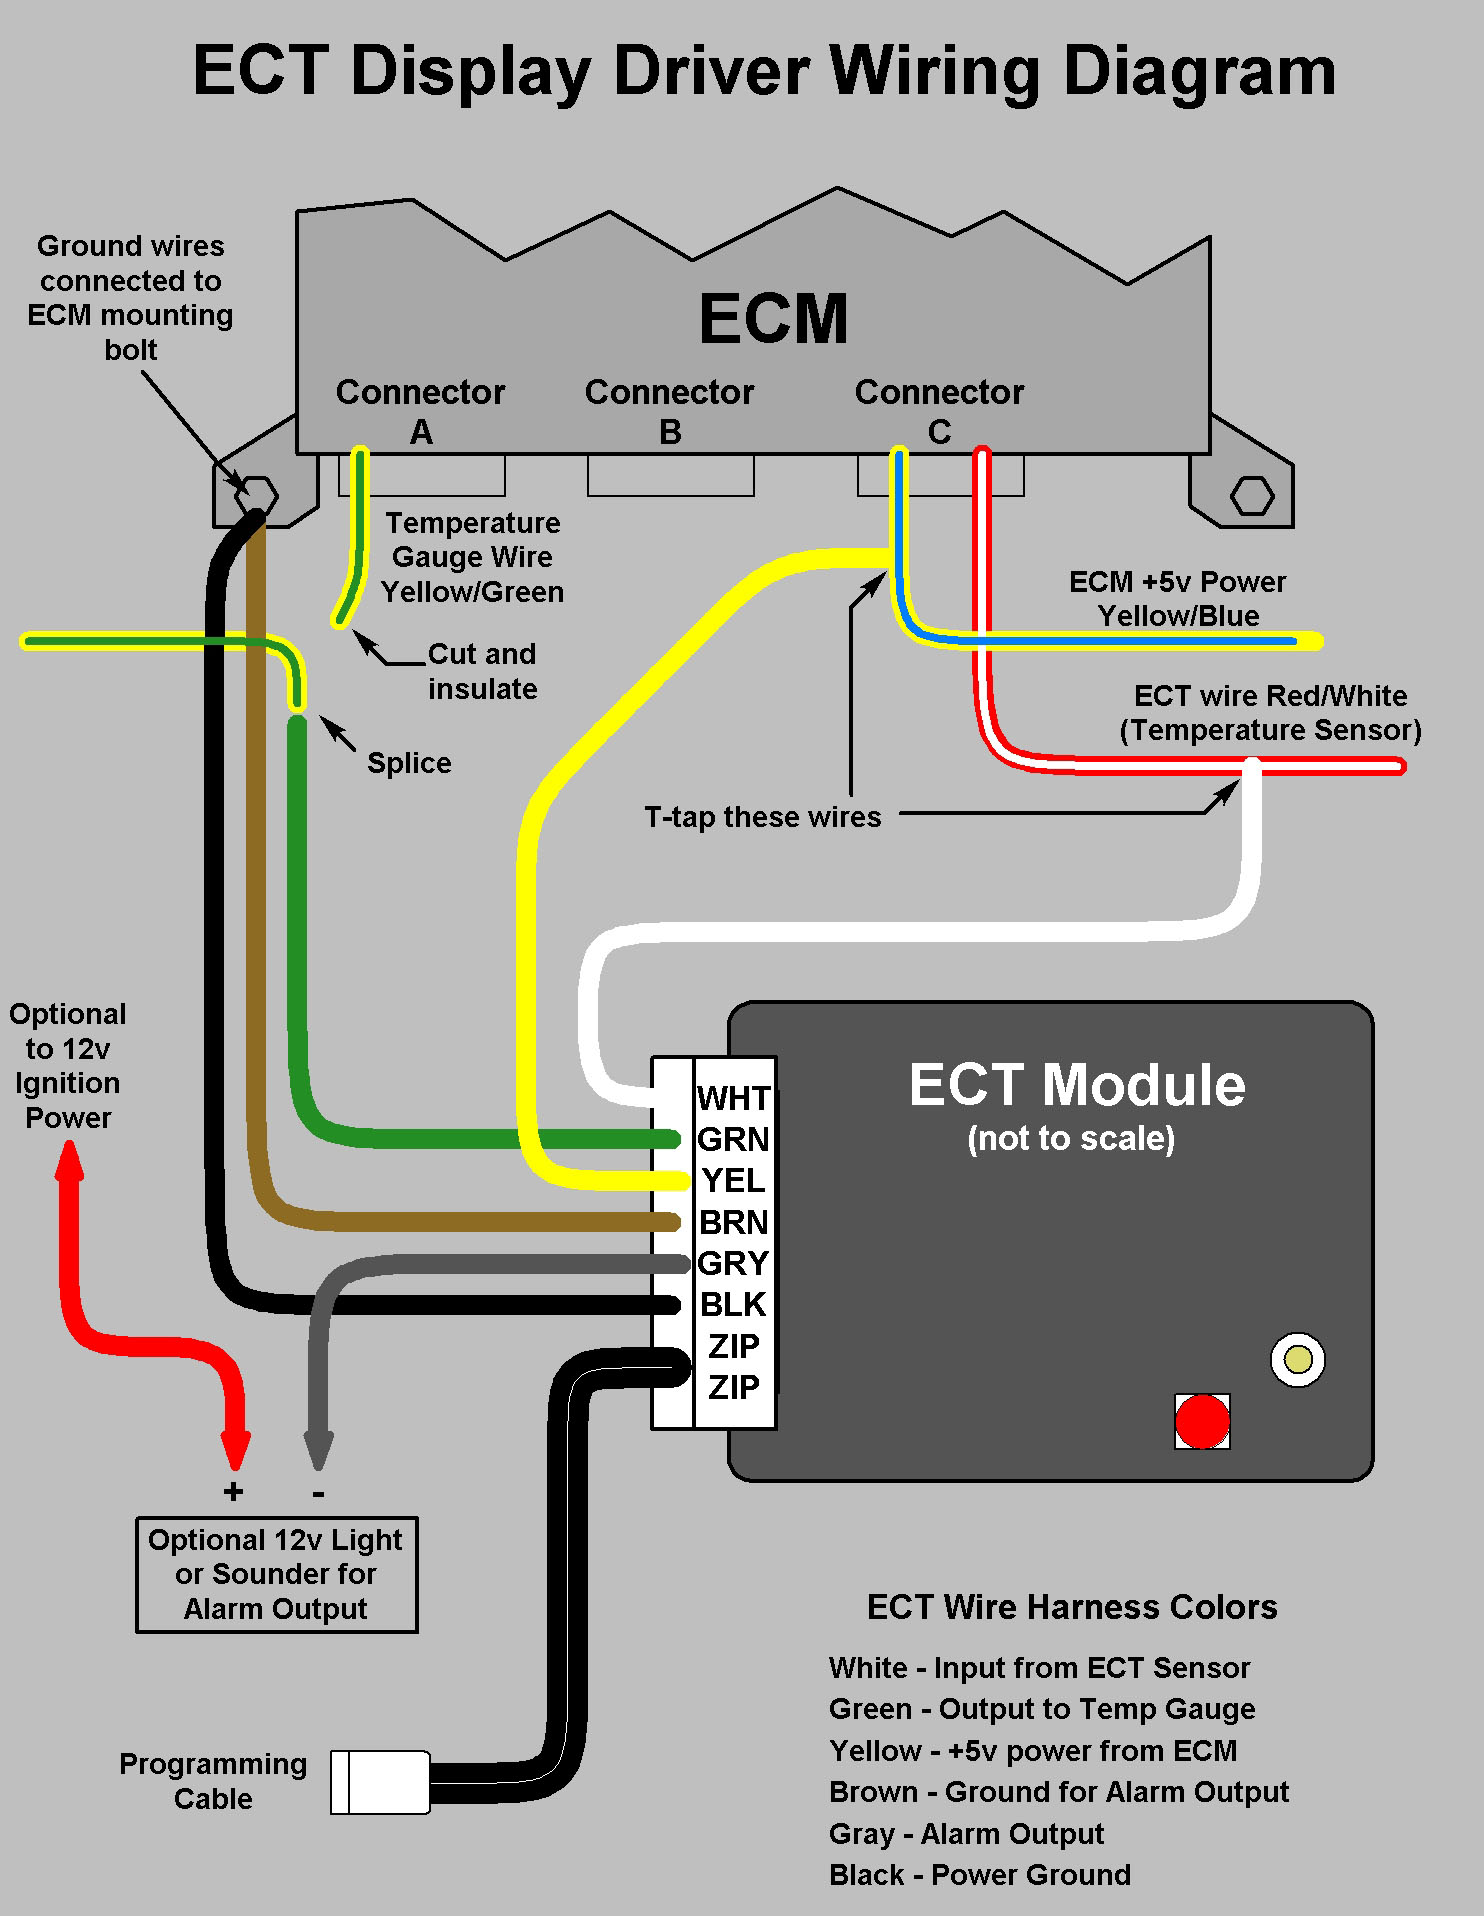 ECT wiring diagram aem ems 4 wiring diagram aem ems fox body mustangs \u2022 free wiring ems stinger wiring diagram at nearapp.co